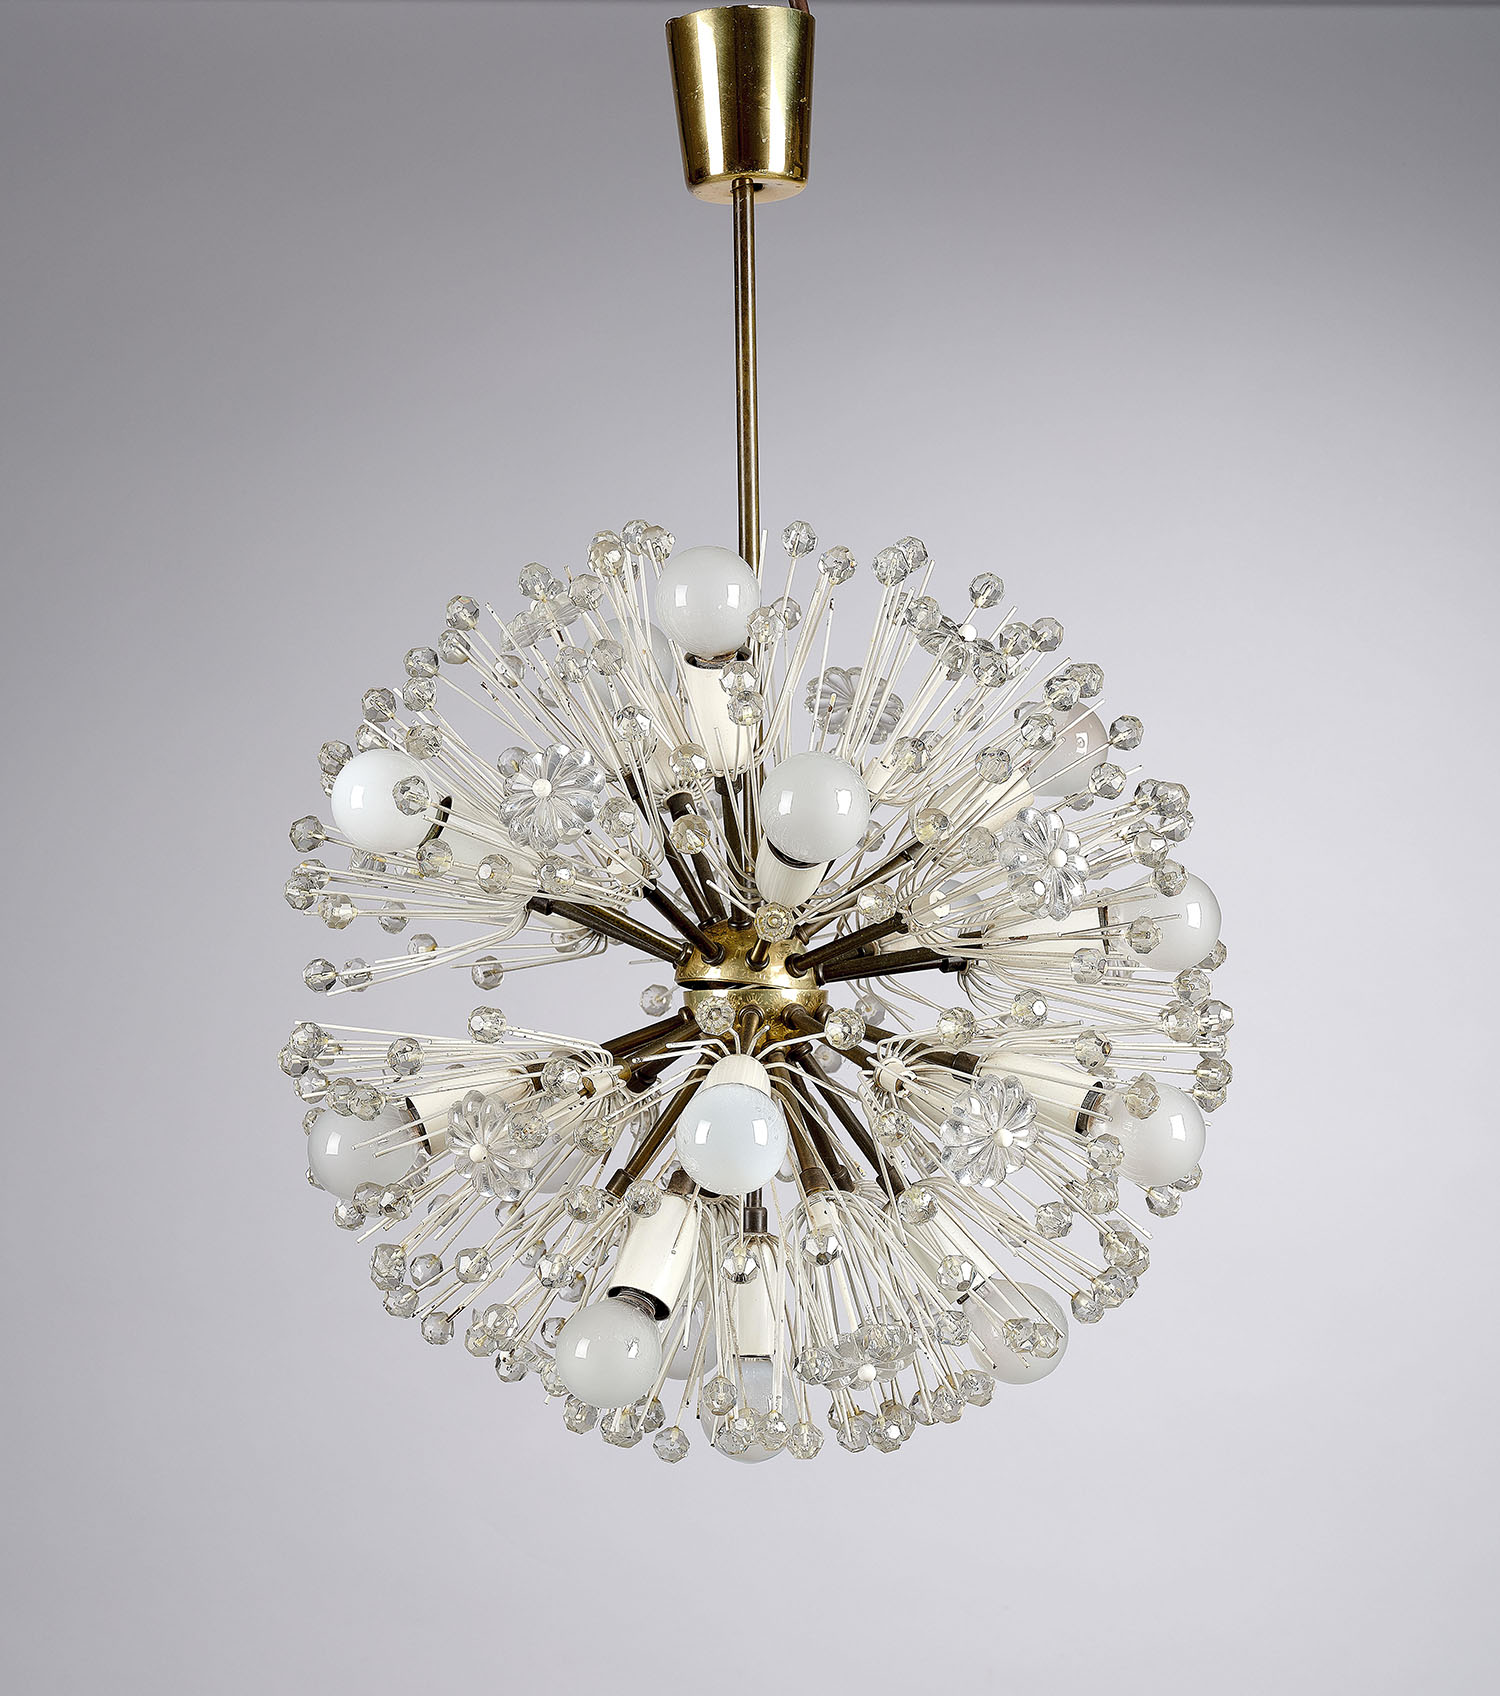 Emil Stejnar, chandelier, design: Vienna, c. 1955, manufactured by A. Rupert Nikoll, starting bid €700